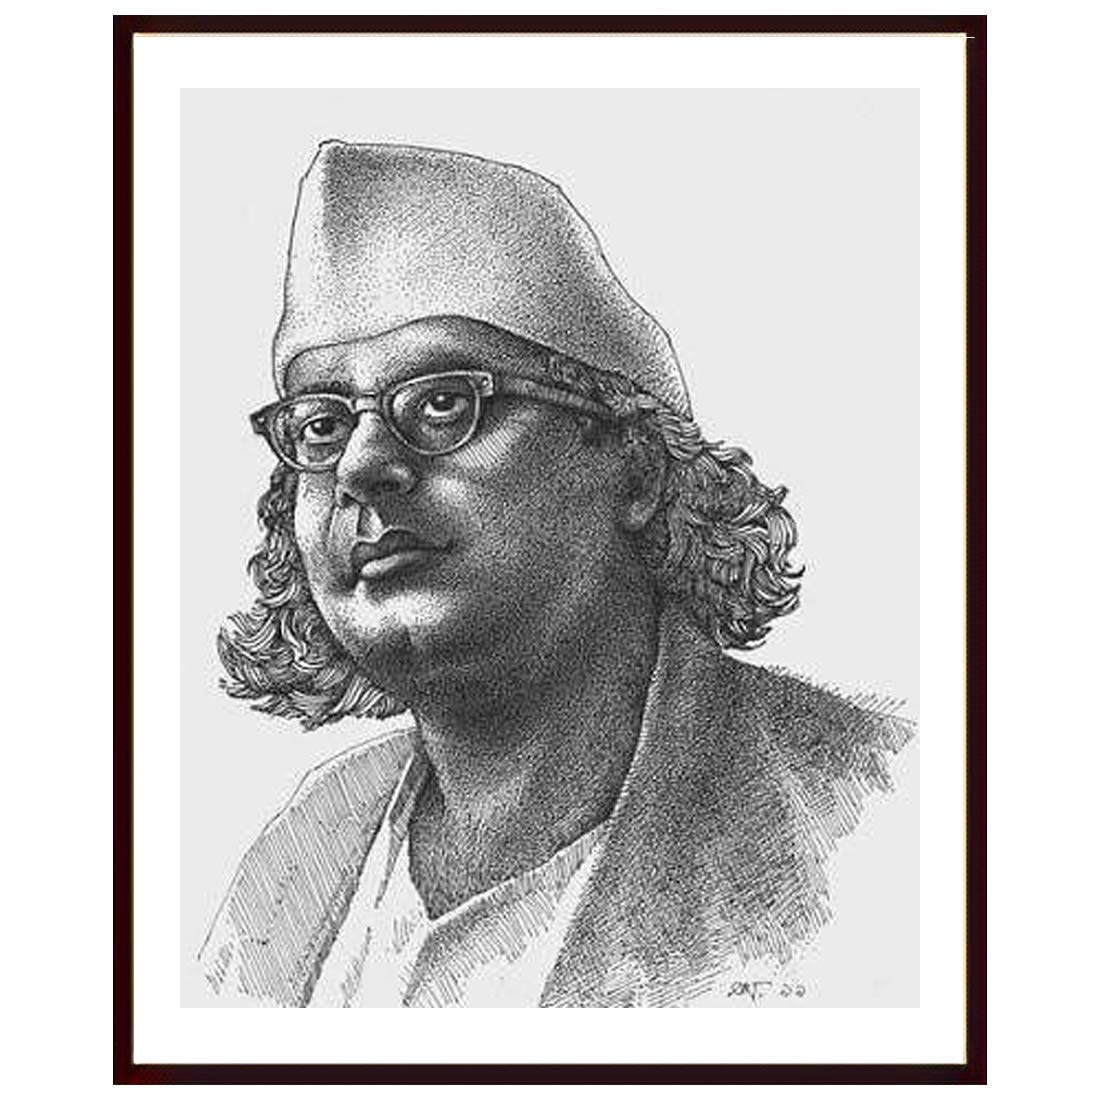 Shyam Framing Art Pencil Sketch Of Freedom Fighter Photo Frame Wall Frame Exclusive With Matte Finished Print Poster With Fiber Wood Frame Without Glass Frame For Living Room Kitchen Office Lobby